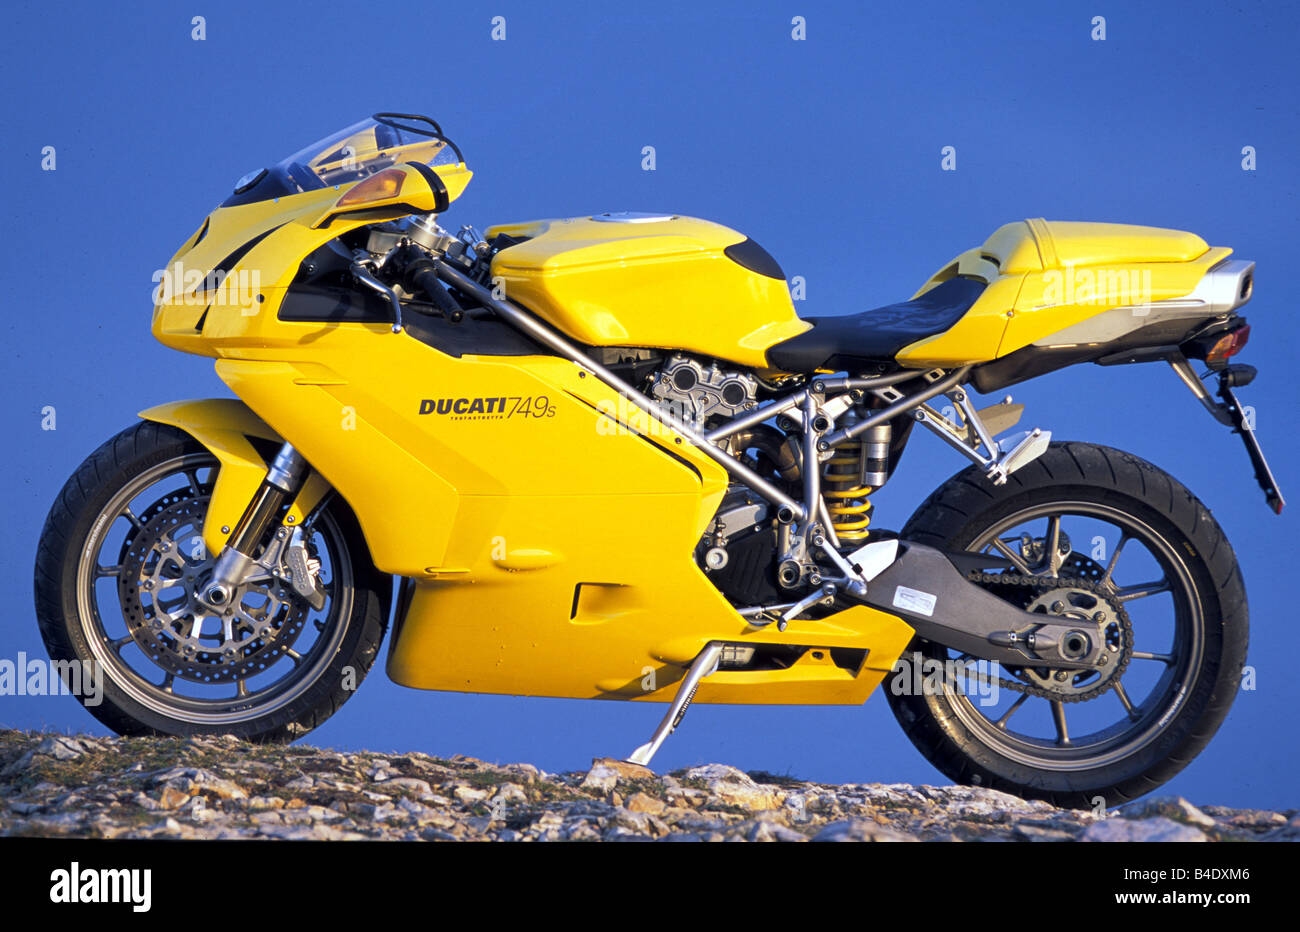 engine cycle, Sports motor cycle, Sportsman, Duapprox.i 749s, yellow, model year 2003, standing, upholding, side - Stock Image